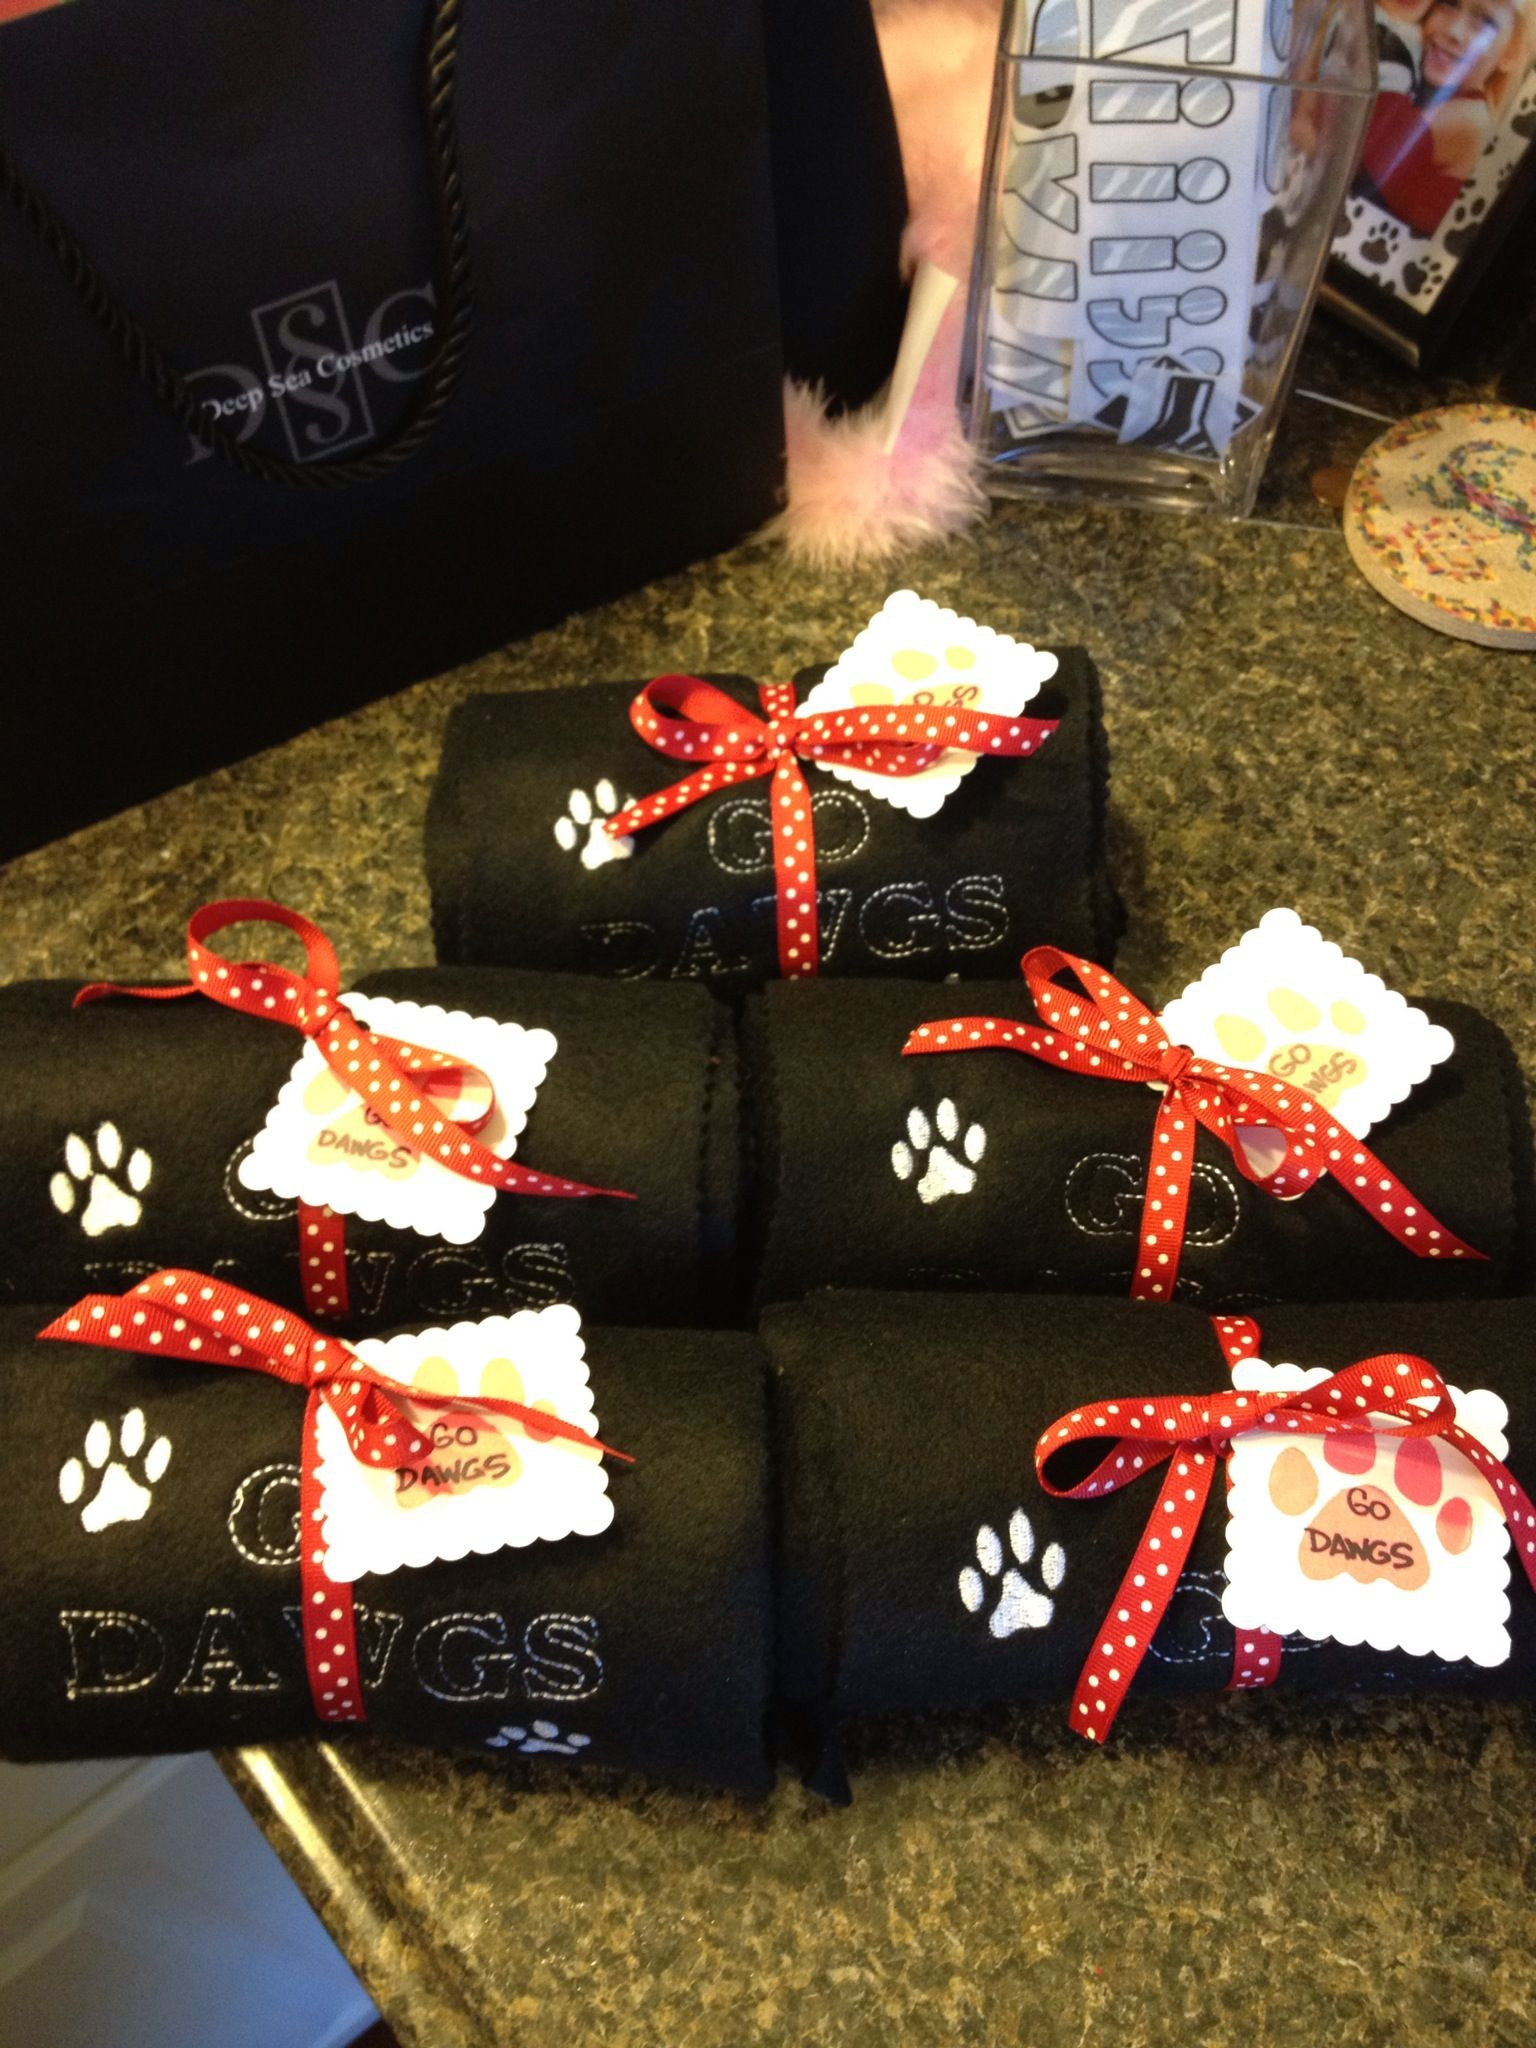 Best ideas about Homemade Cheer Gift Ideas . Save or Pin DIY Cheerleading ts Cheerleading Now.